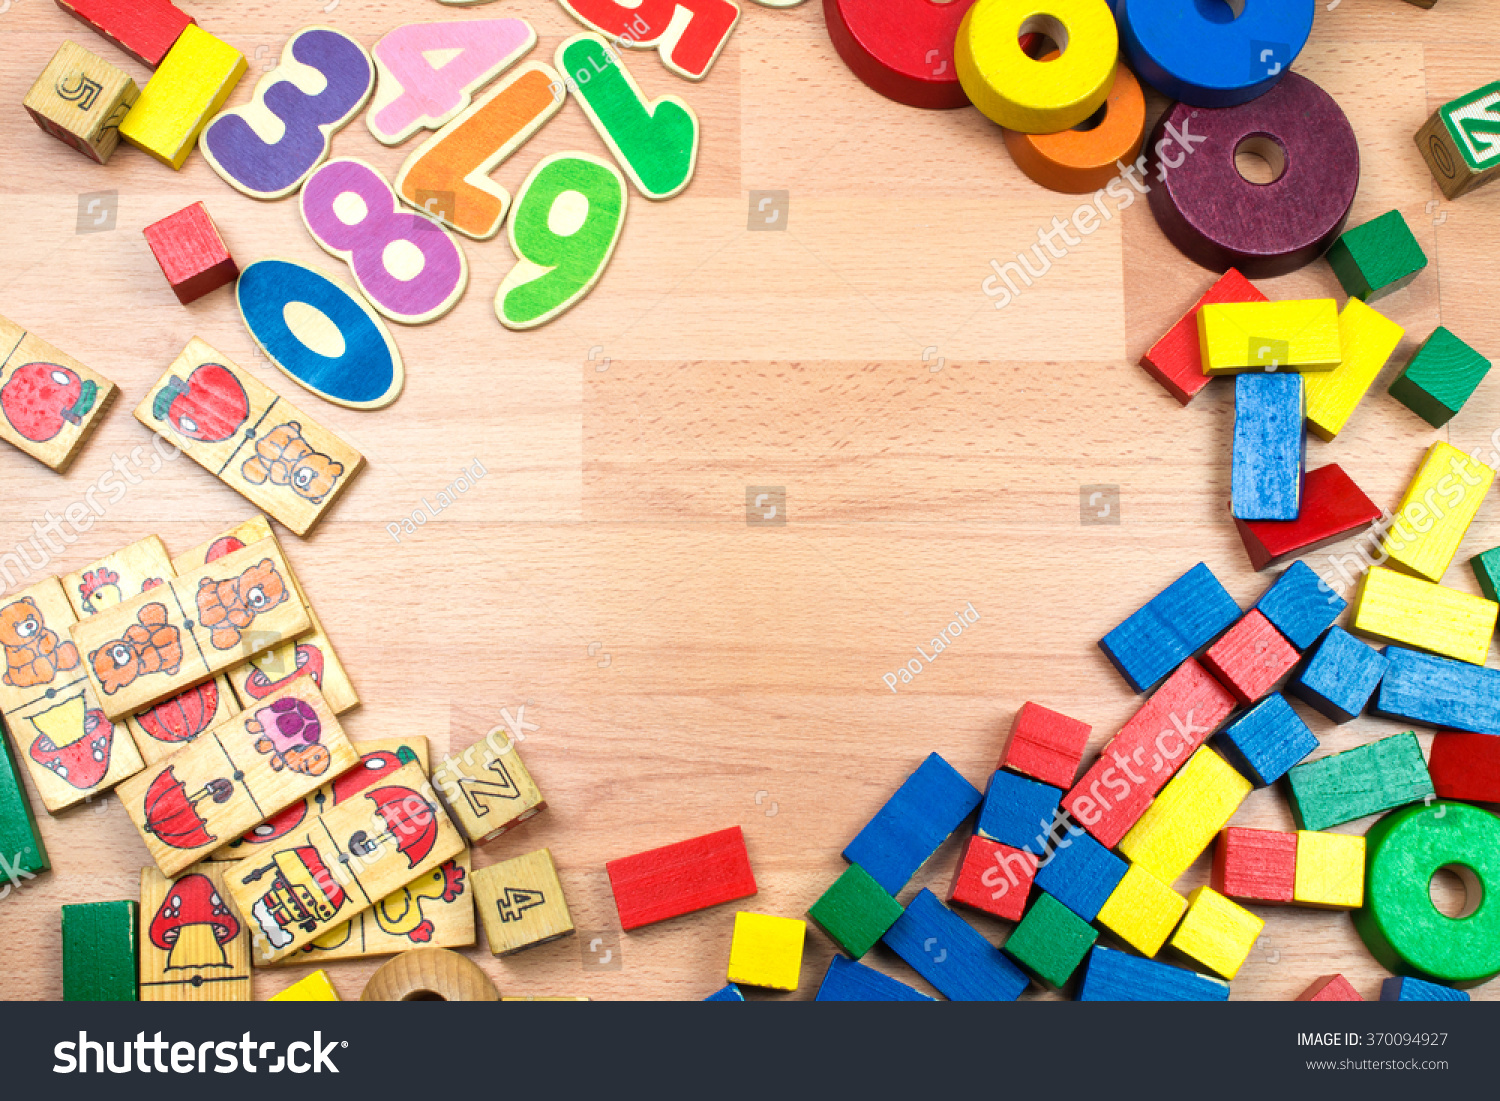 Wooden Toys Background Stock Photo Edit Now 370094927 Shutterstock